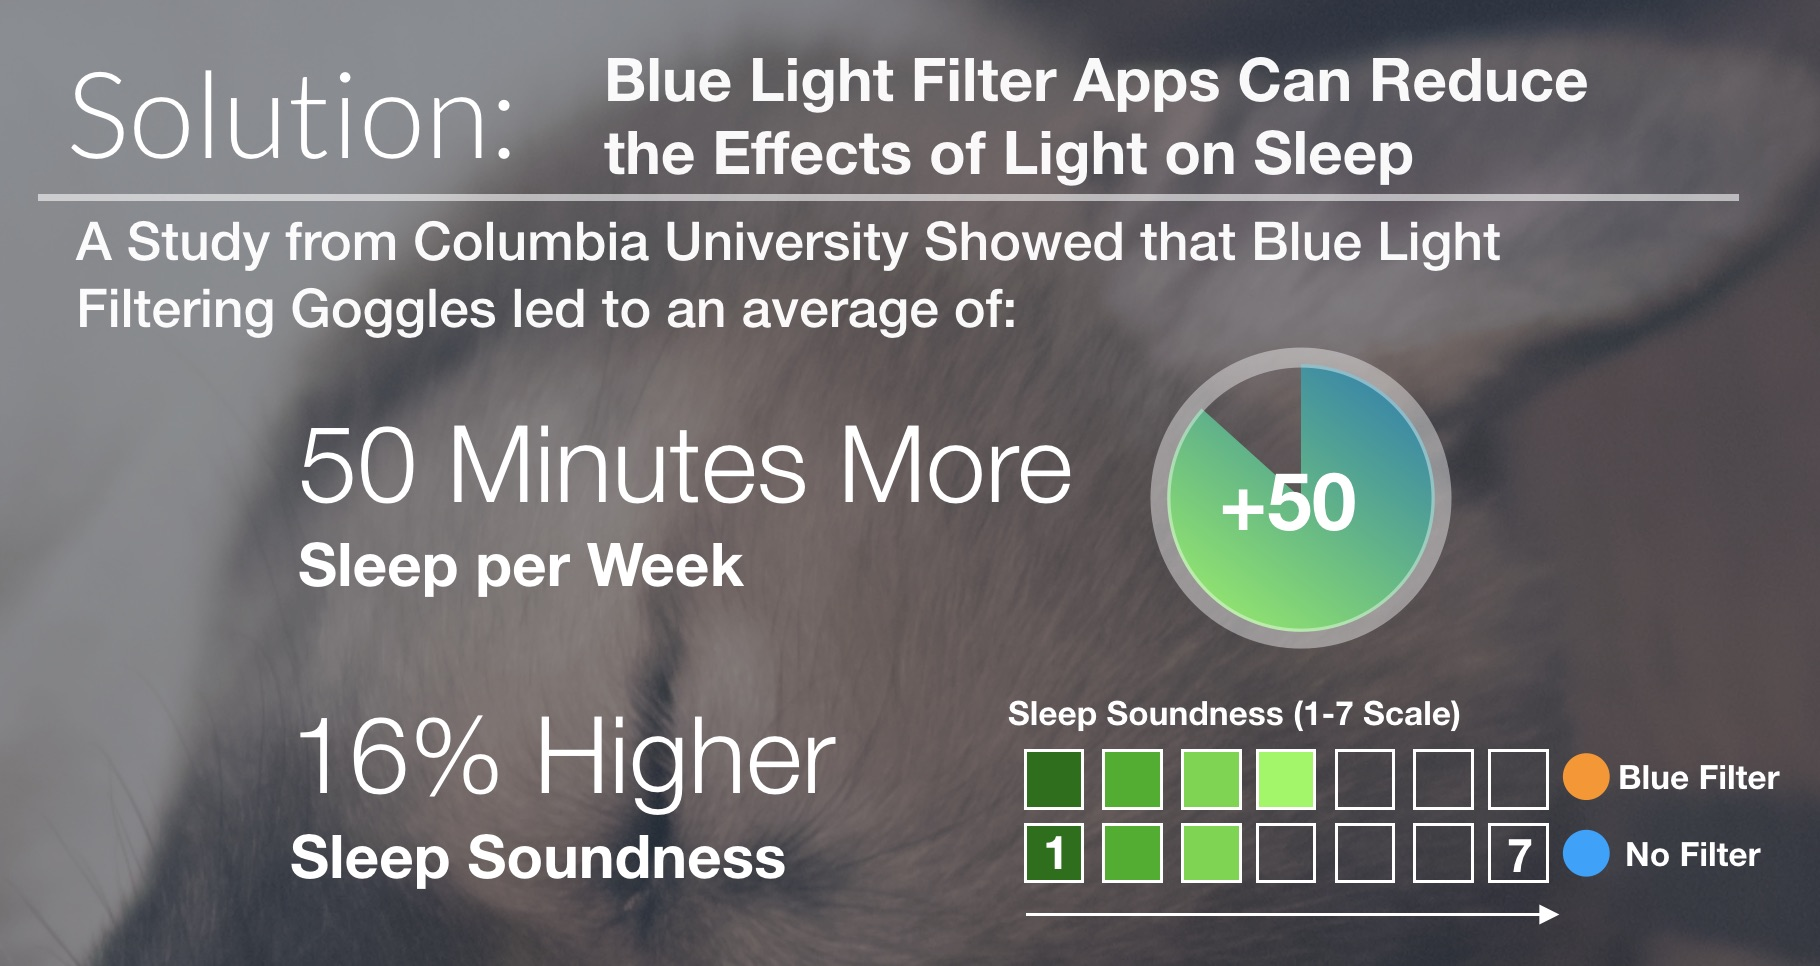 Benefits of blue light filtering apps